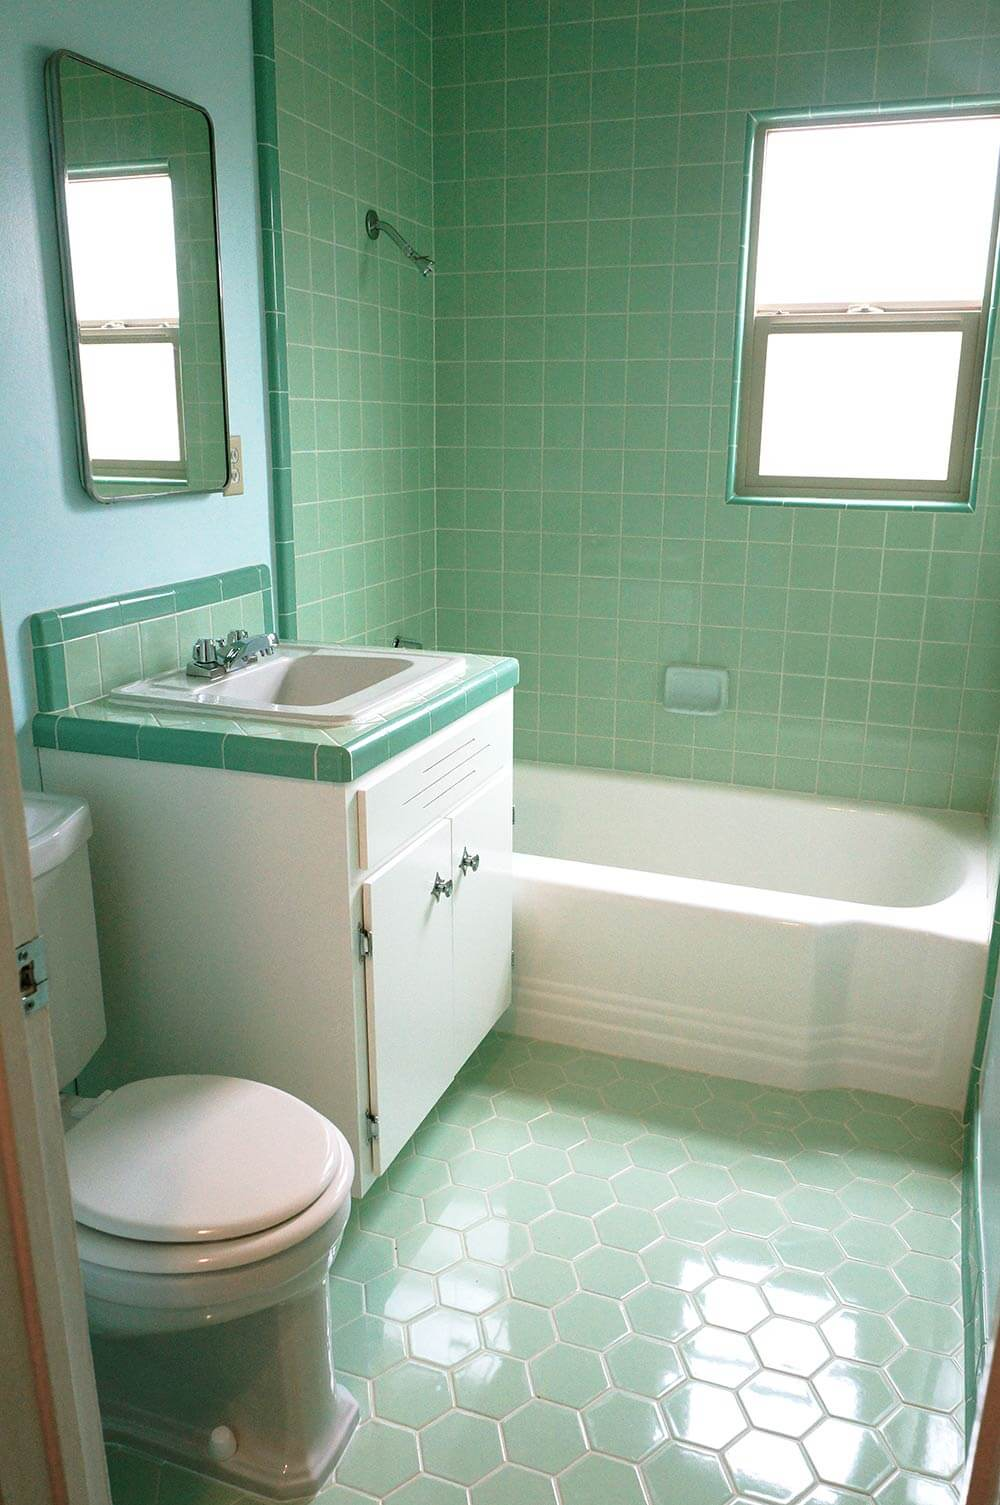 The color green in kitchen and bathroom sinks tubs and for Old tile bathroom ideas